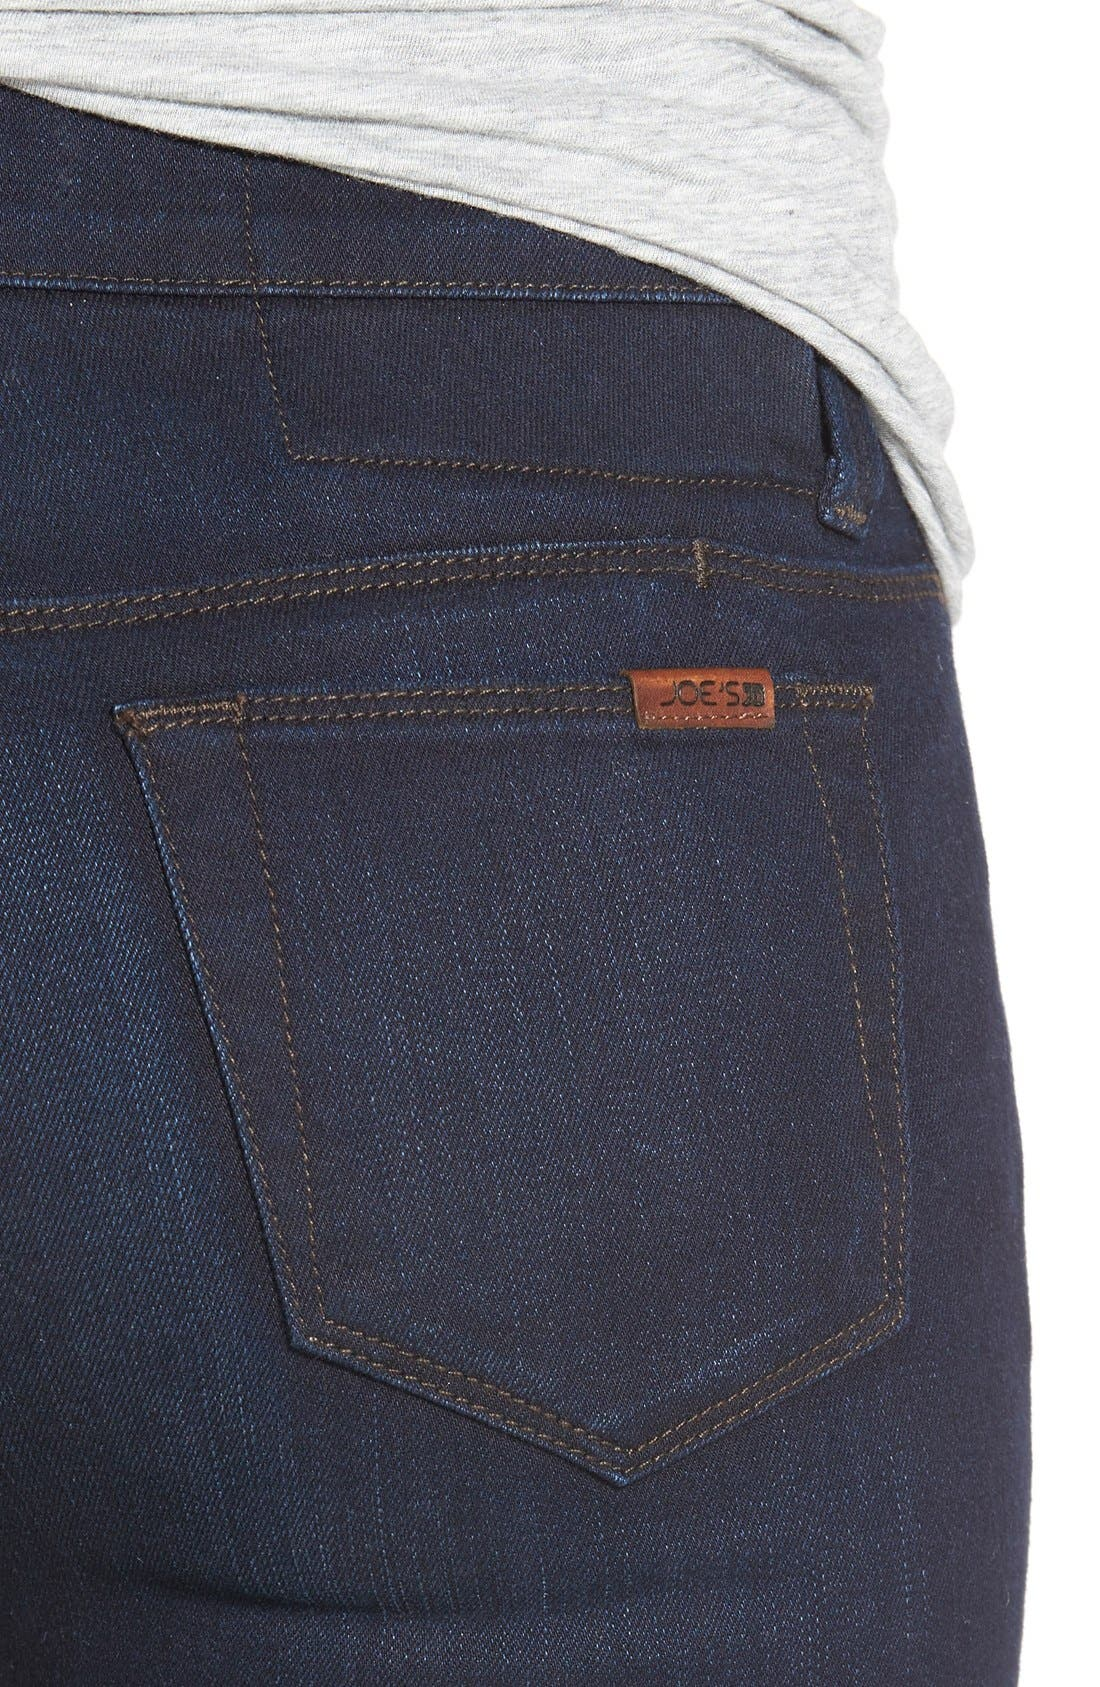 'Flawless - #Hello' Skinny Jeans,                             Alternate thumbnail 2, color,